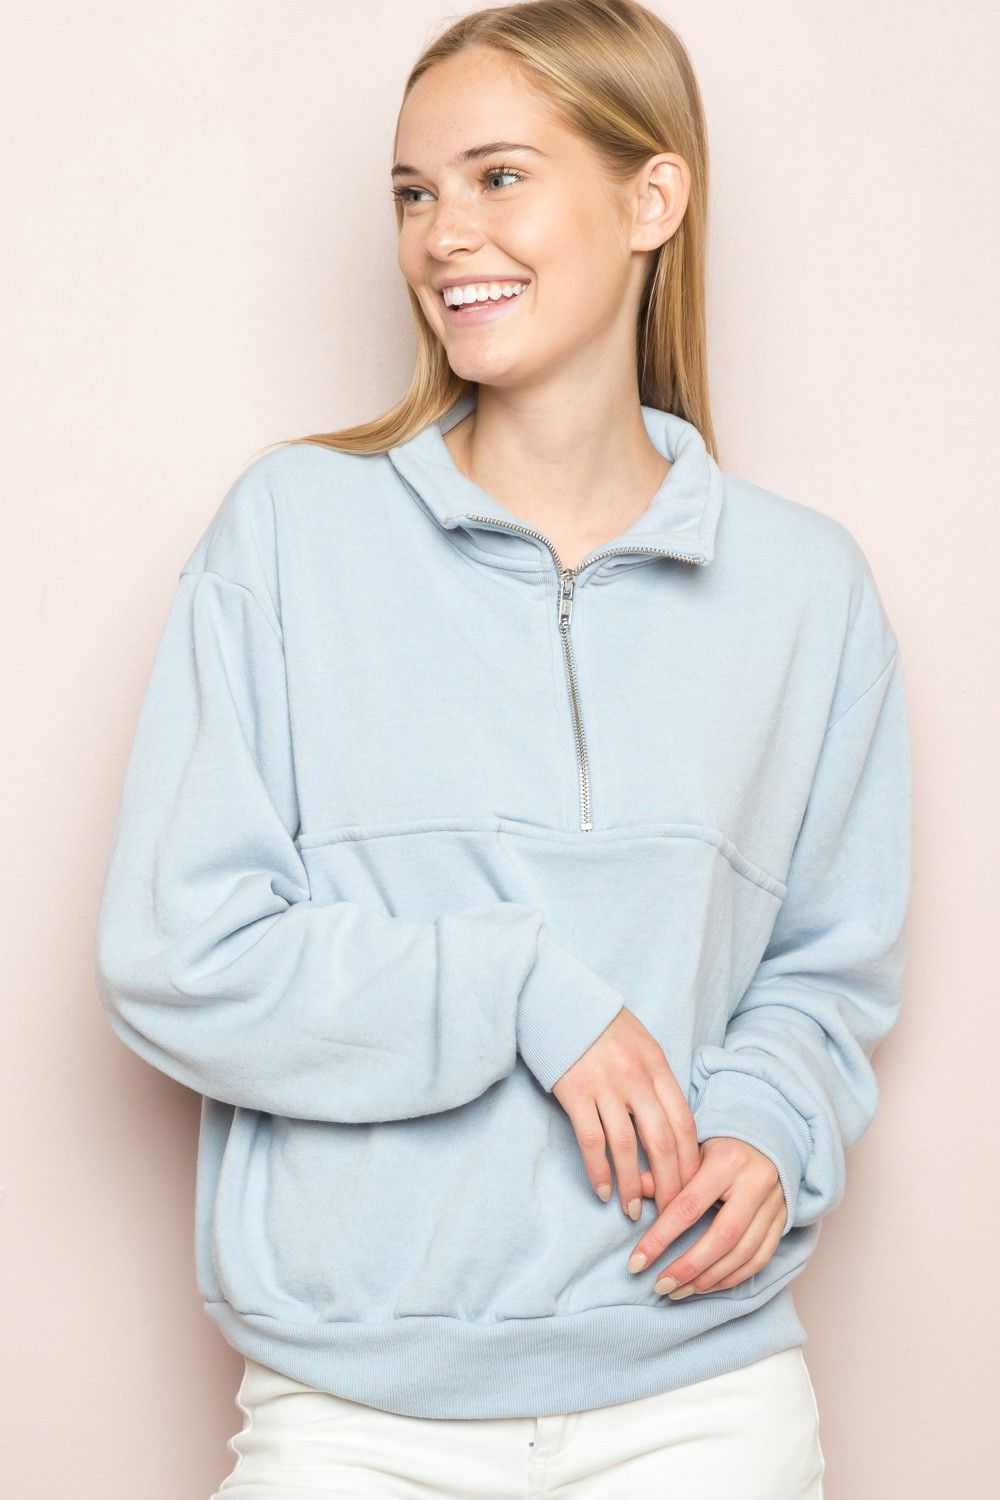 Isabella Sweatshirt Pullovers Sweaters Clothing